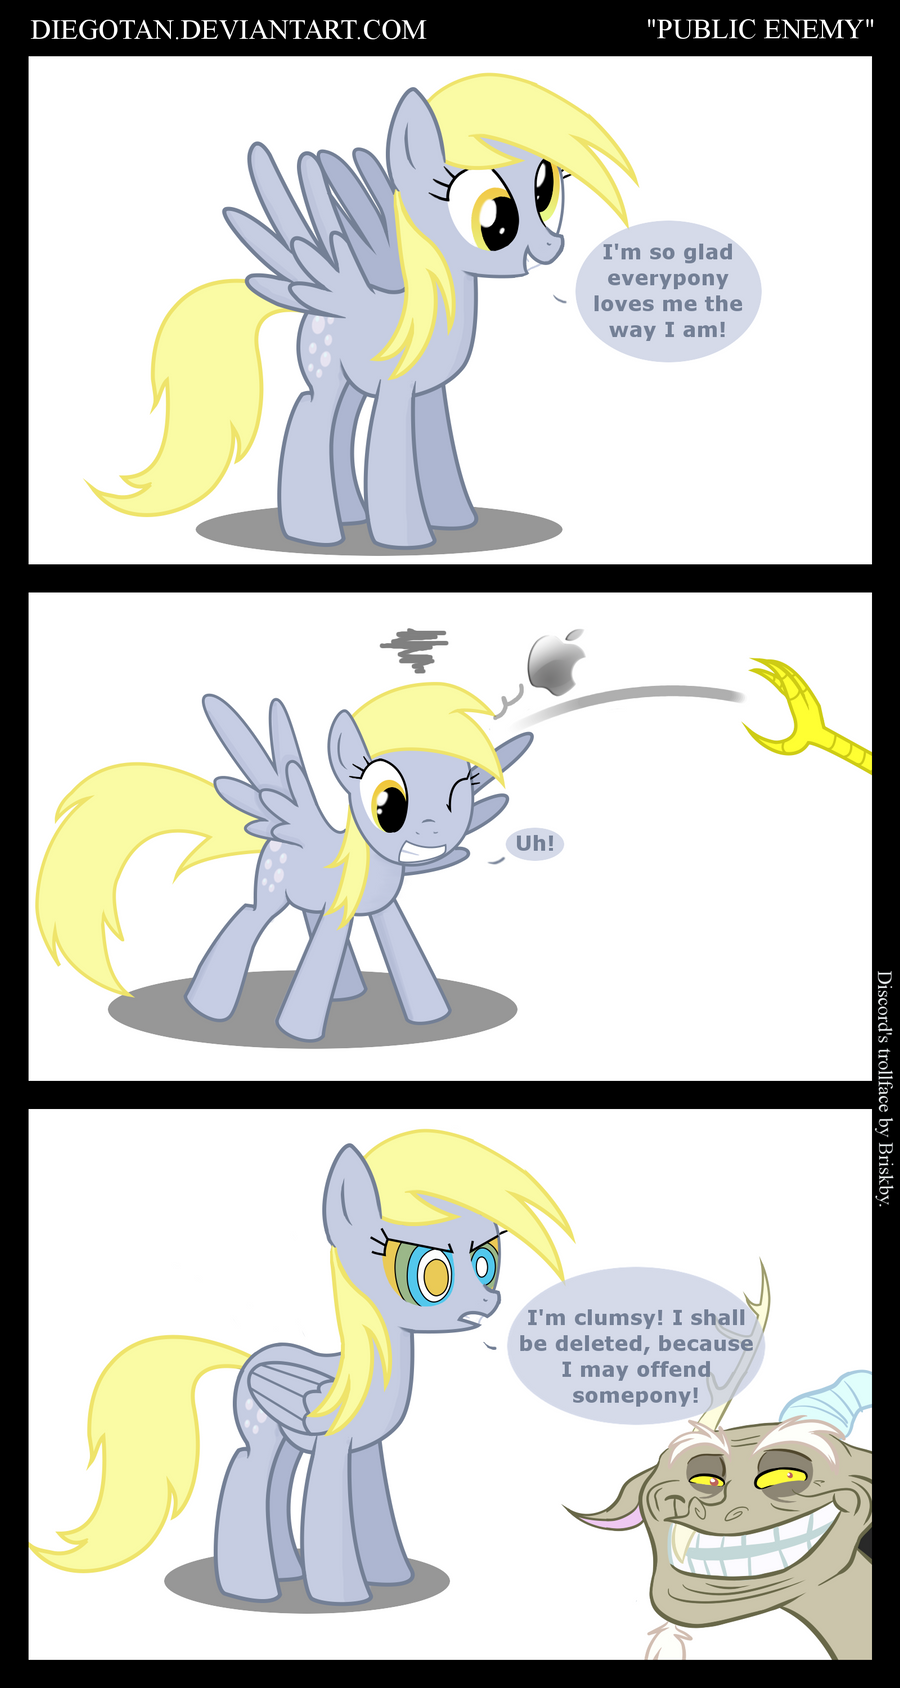 Derpy Hooves as a Public Enemy by DiegoTan